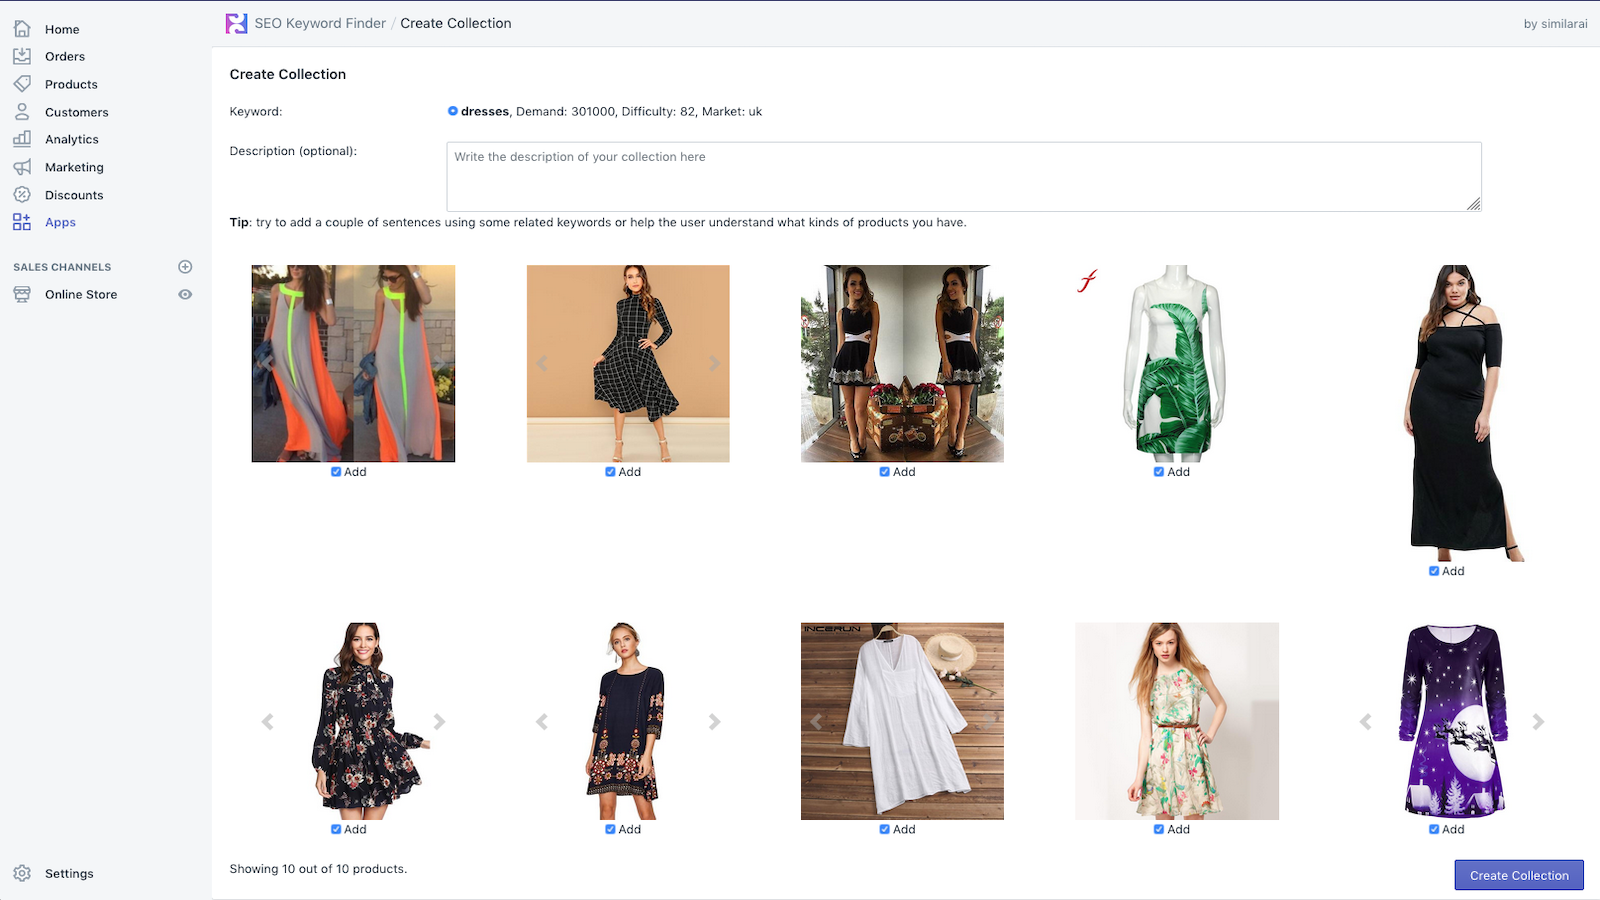 Create a new collection from one of the keywords suggestions